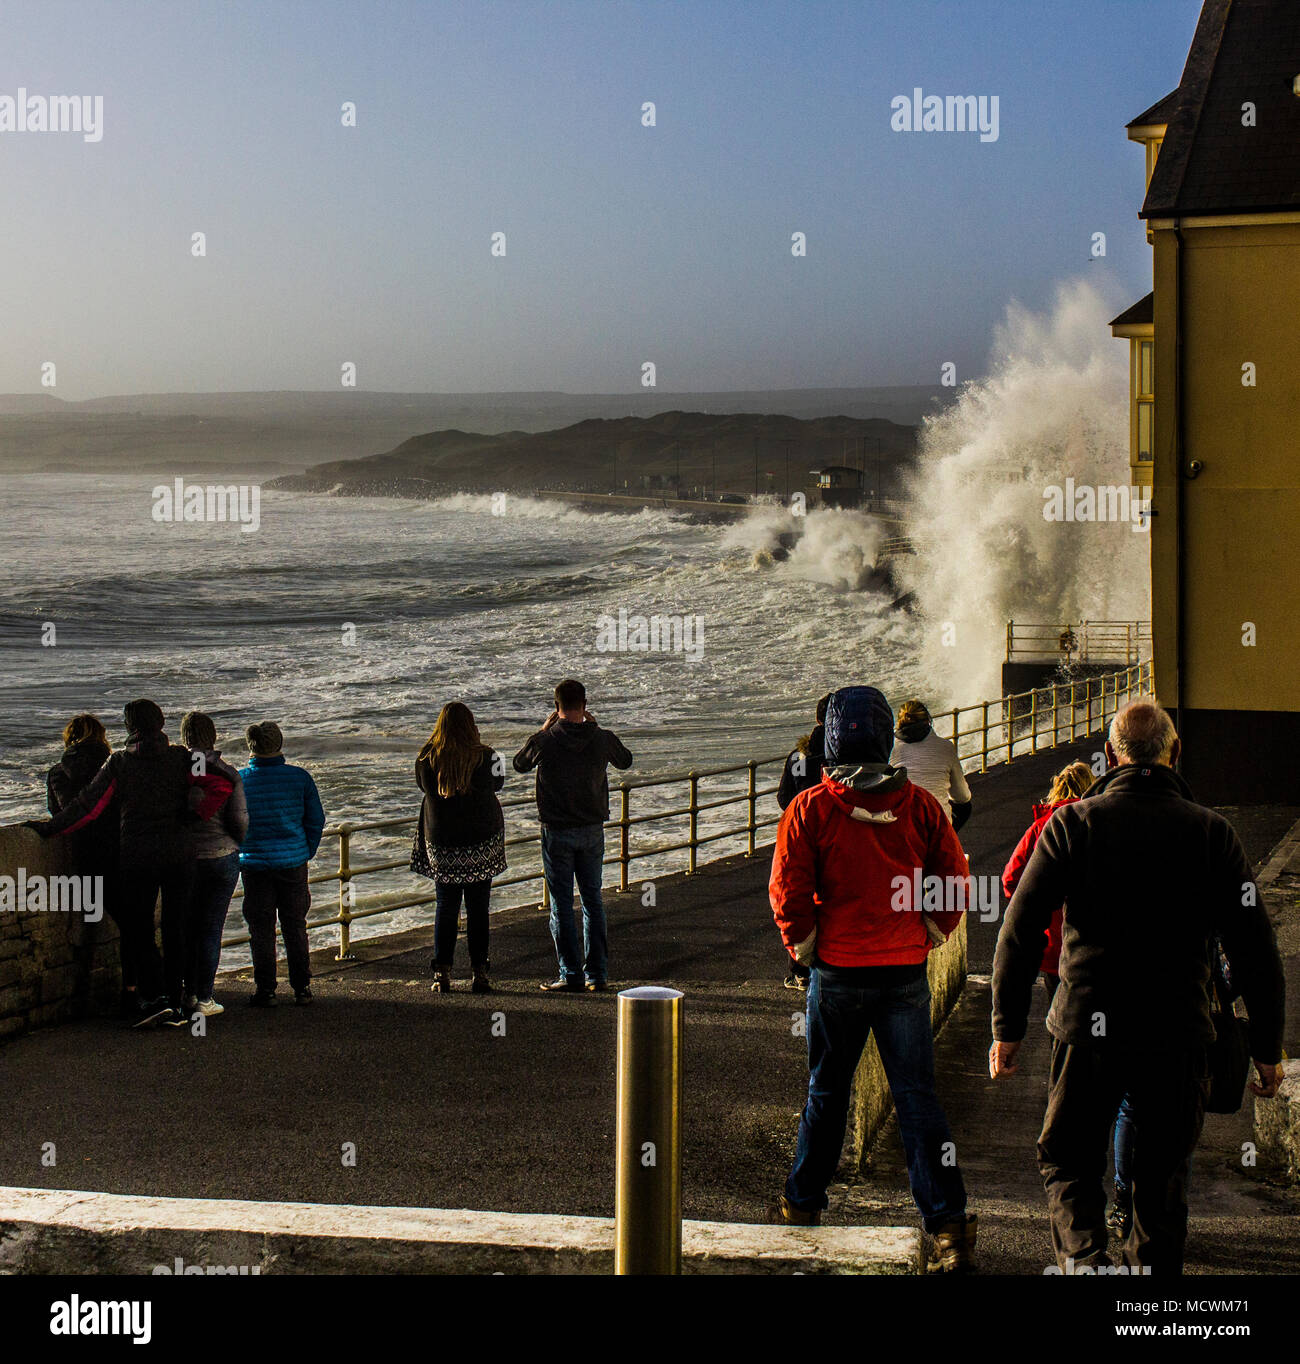 Crowd watching waves crashing over promenade in Lahinch at high tide - Stock Image